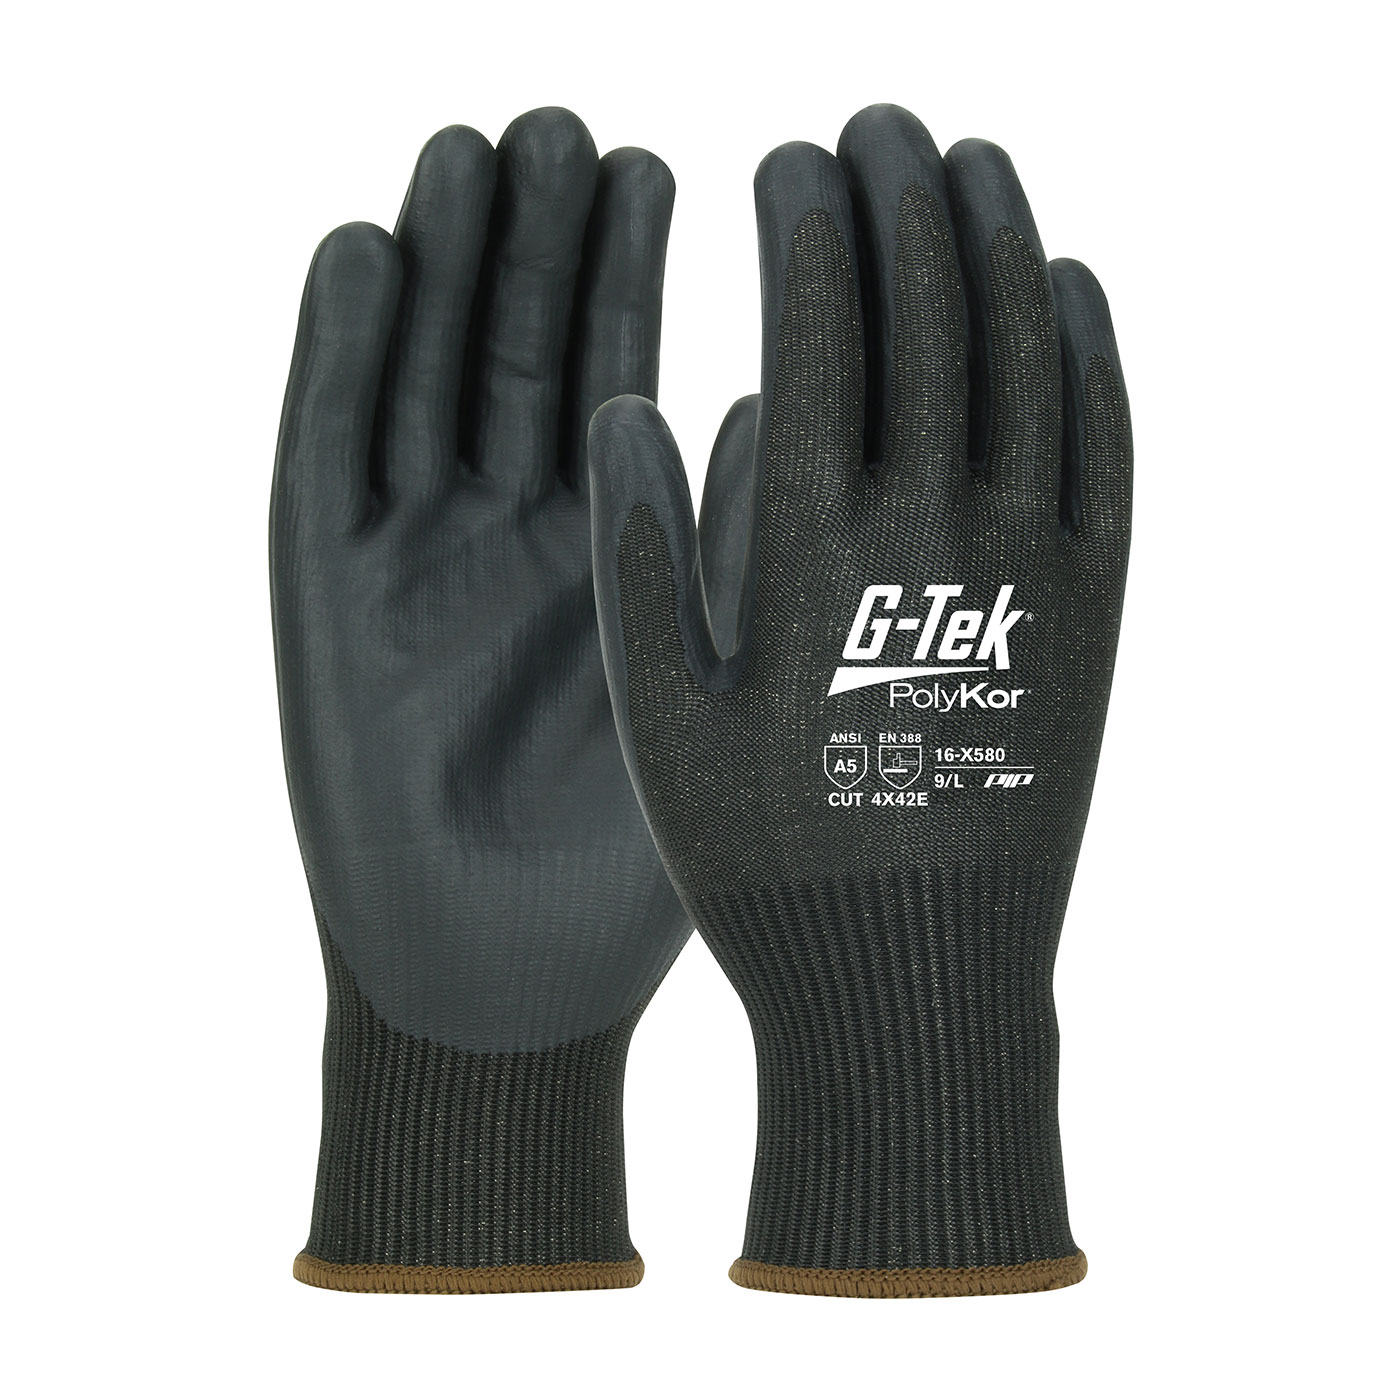 #16-X580 PIP® G-Tek® PolyKor™ Xrystal™ NeoFoam™ Coated Palm Knit Touchscreen compatible Gloves